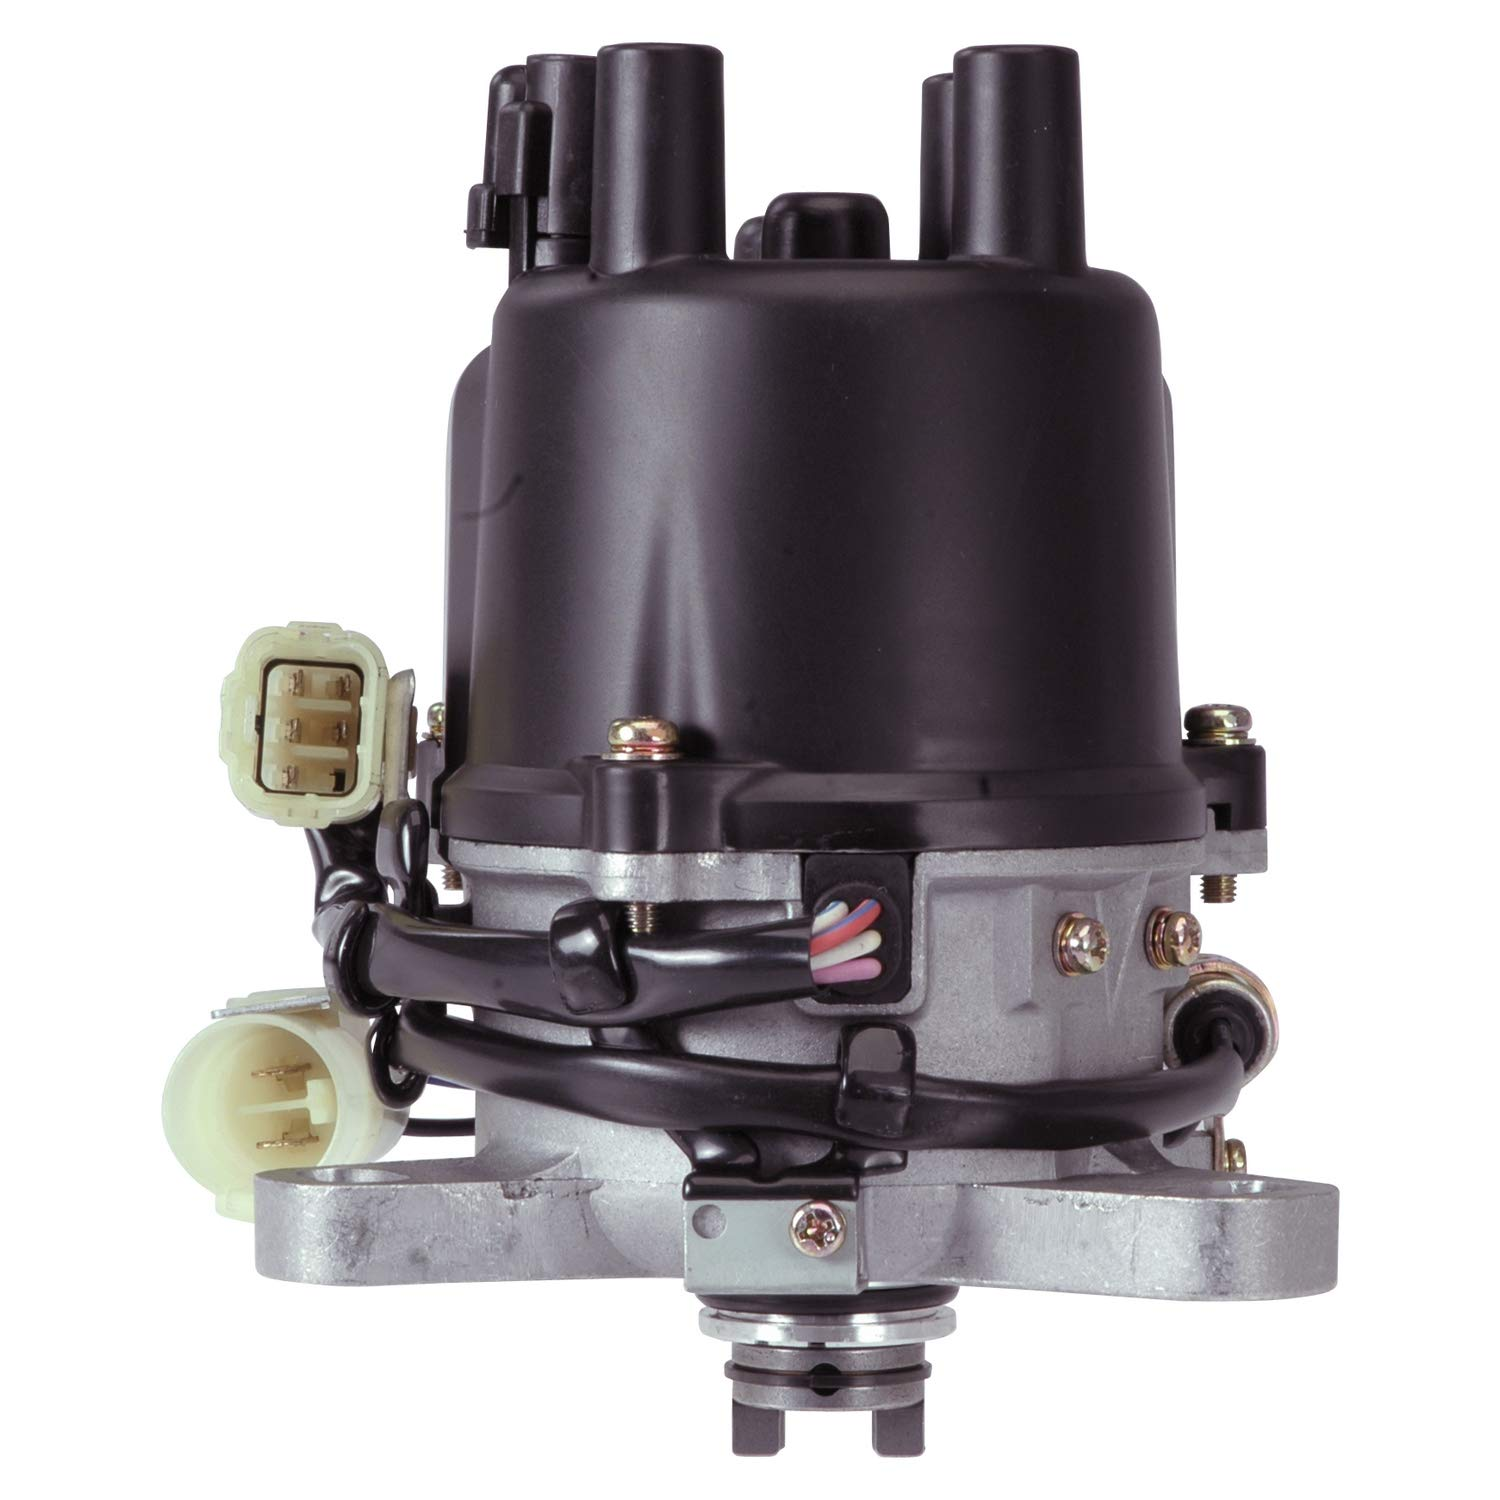 NEW Distributor Fits Toyota 4Runner Pickup Sr5 22Re 4-Cyl 1991-1995 2-YEAR WARRANTY